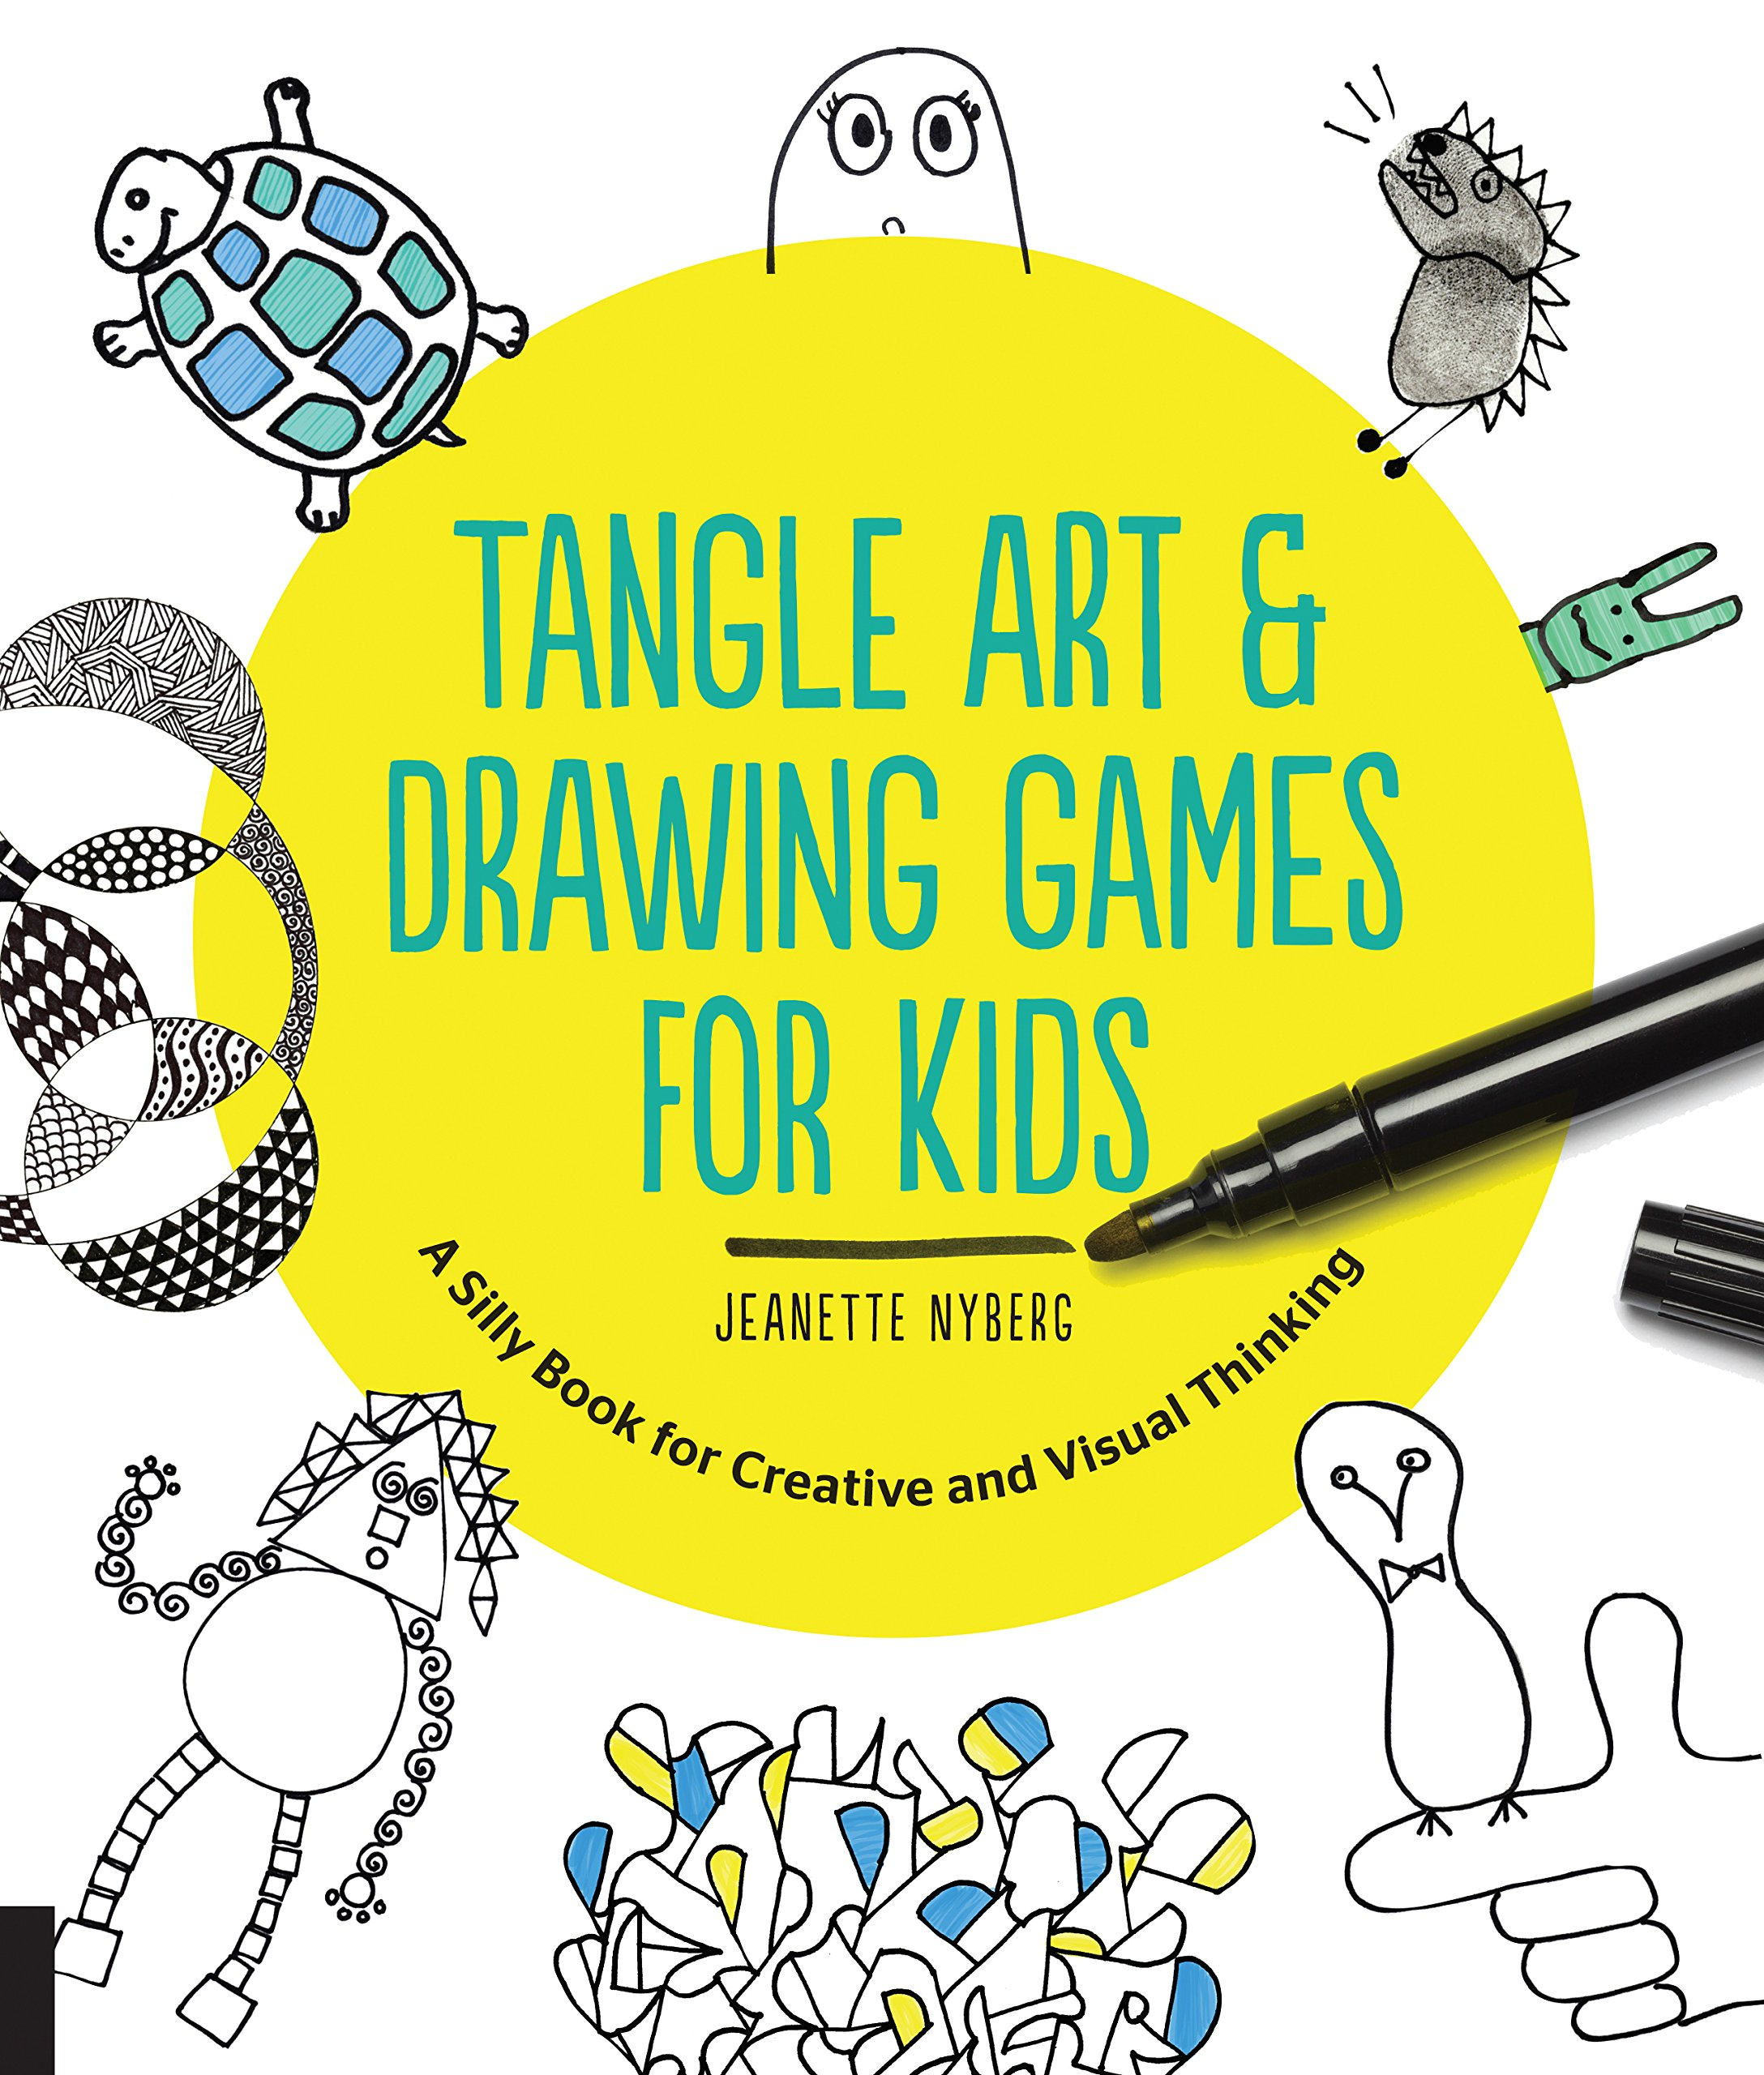 drawing games drawing games Drawing Images For Kids Free Download Best Drawing Images